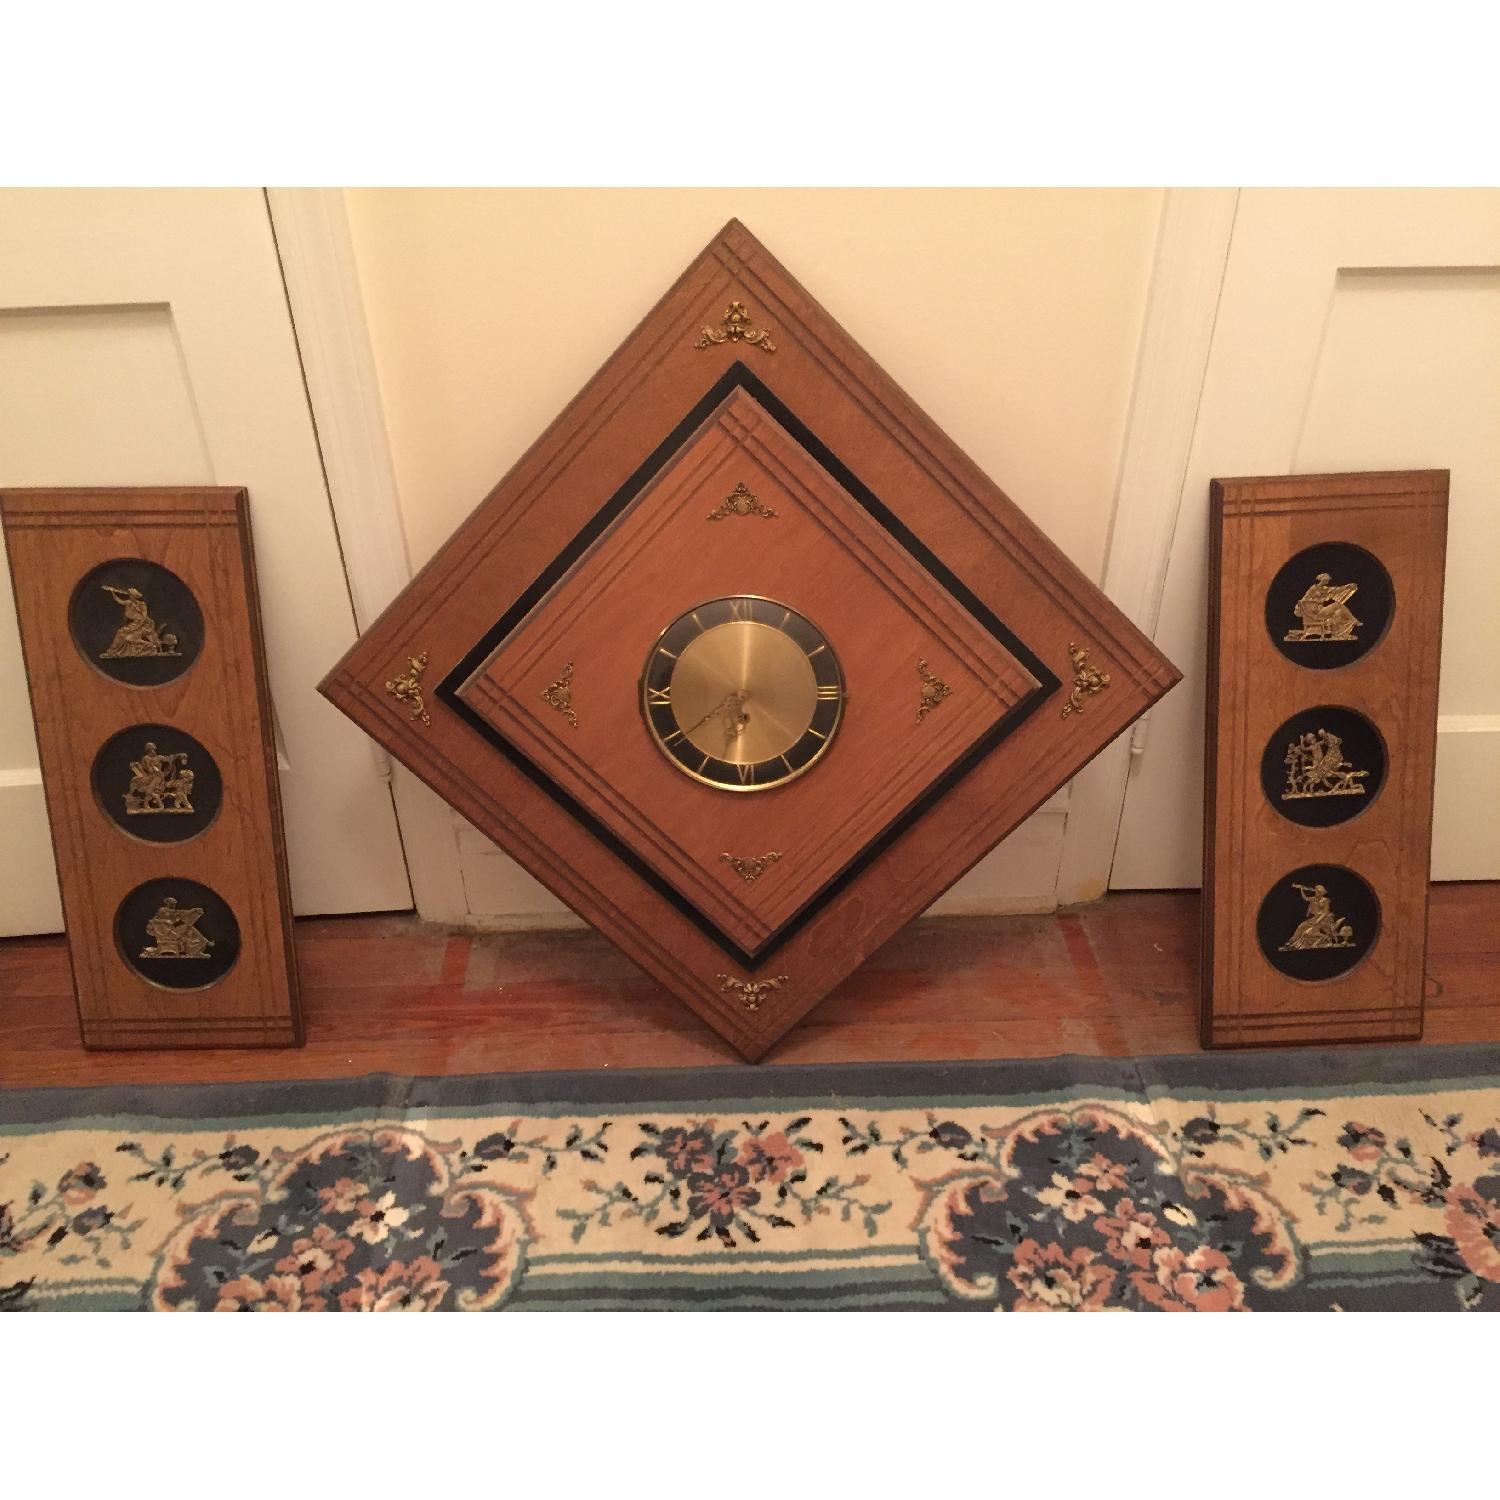 Circa 1970 Wood Wall Clock With Side Panels - image-1